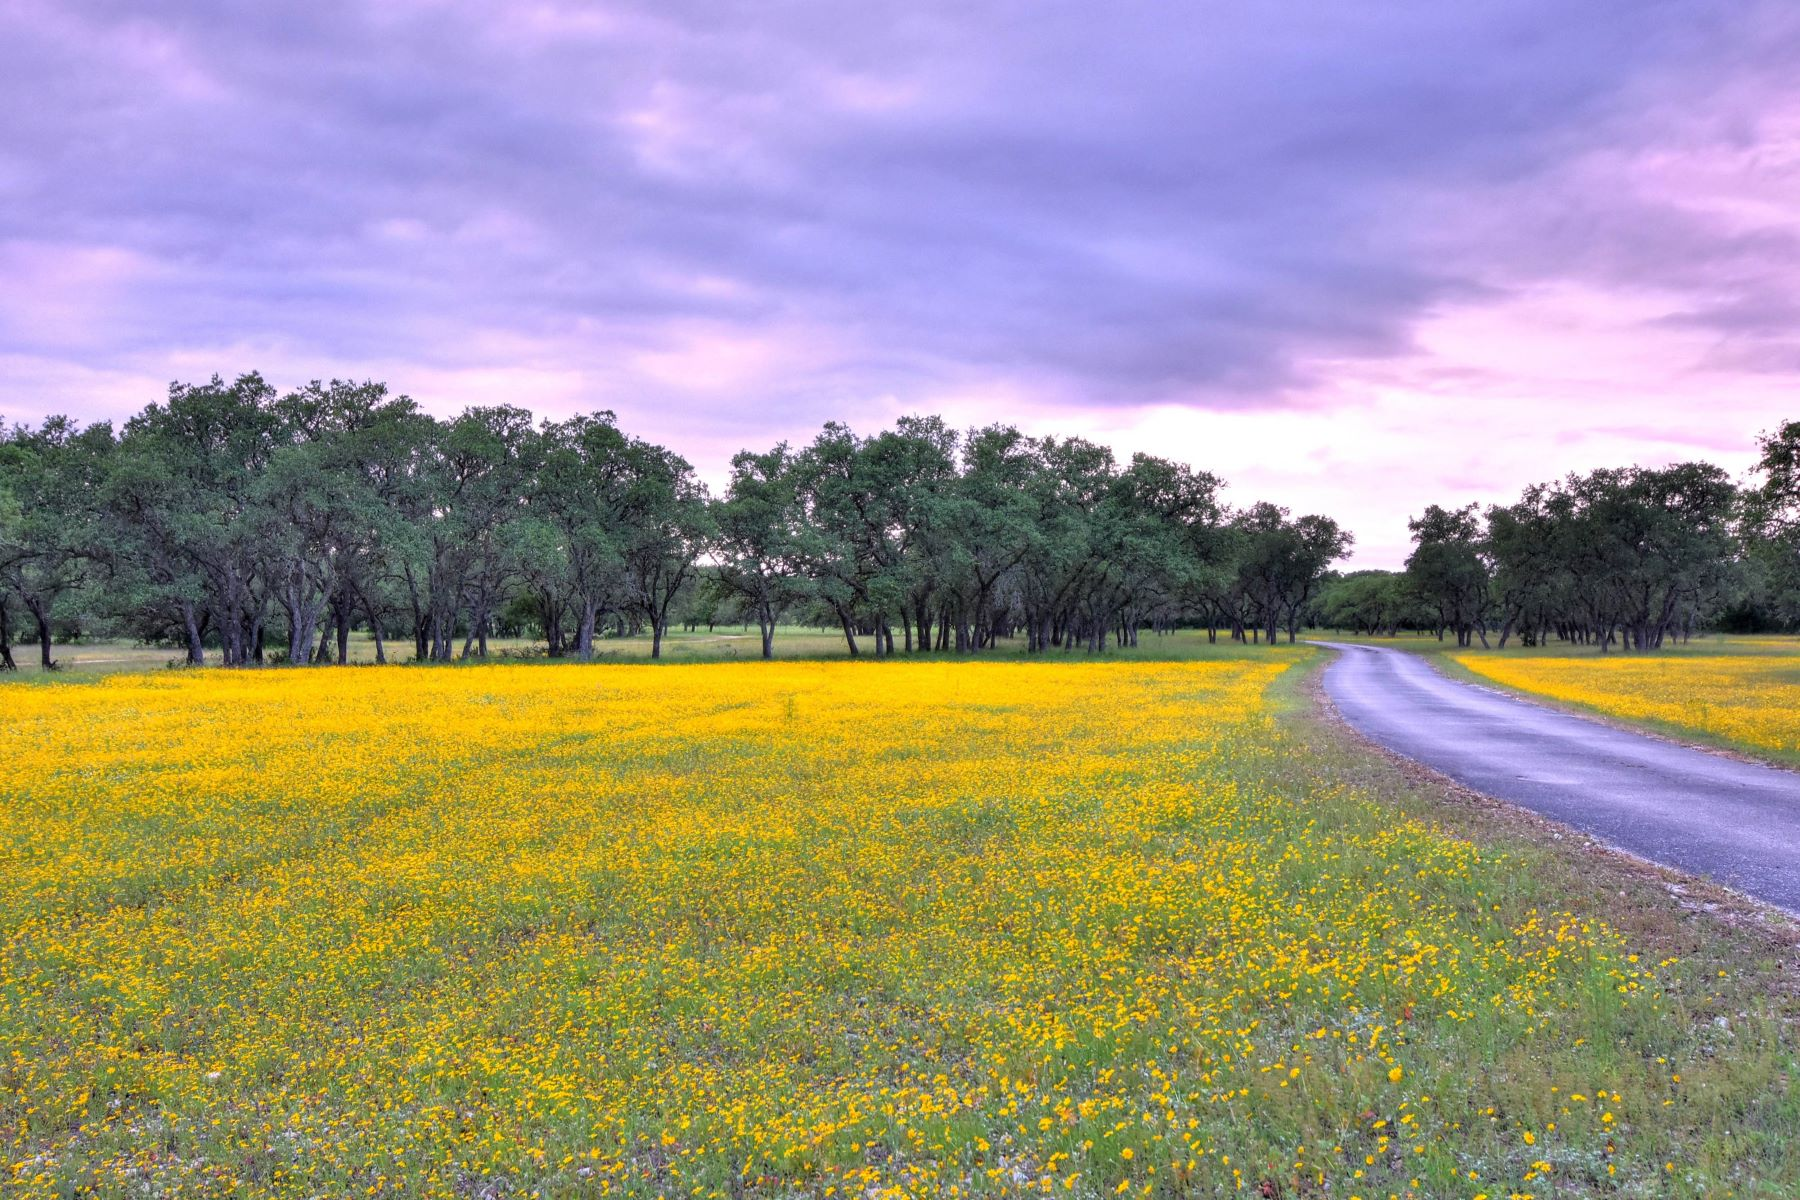 Farm / Ranch / Plantation for Sale at 801+/- Acres on the Guadalupe River 2734 Harvest Creek Ln Boerne, Texas 78006 United States